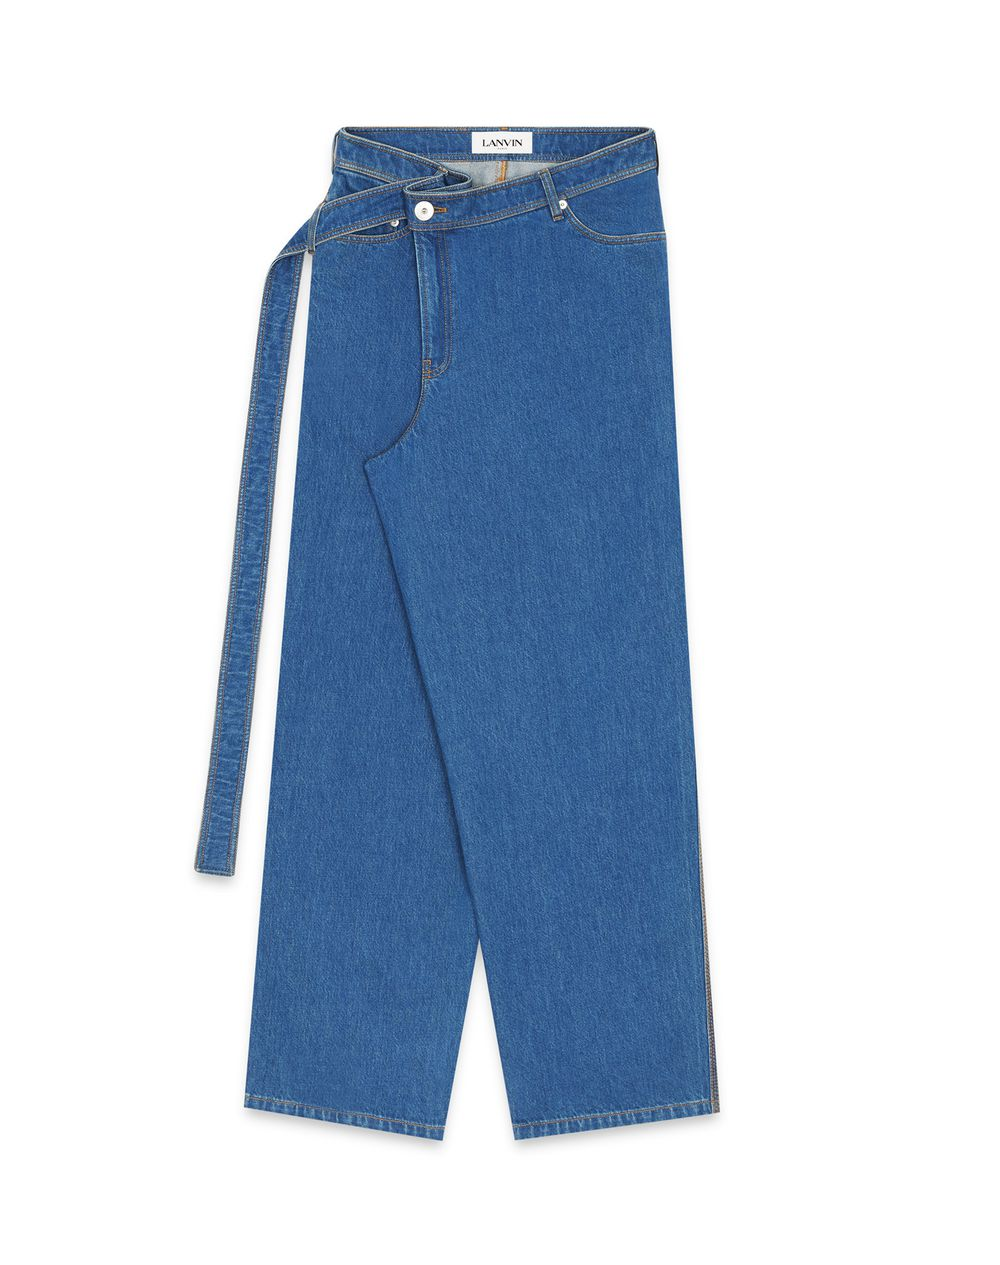 LARGE BEALTED DENIM PANTS - Lanvin